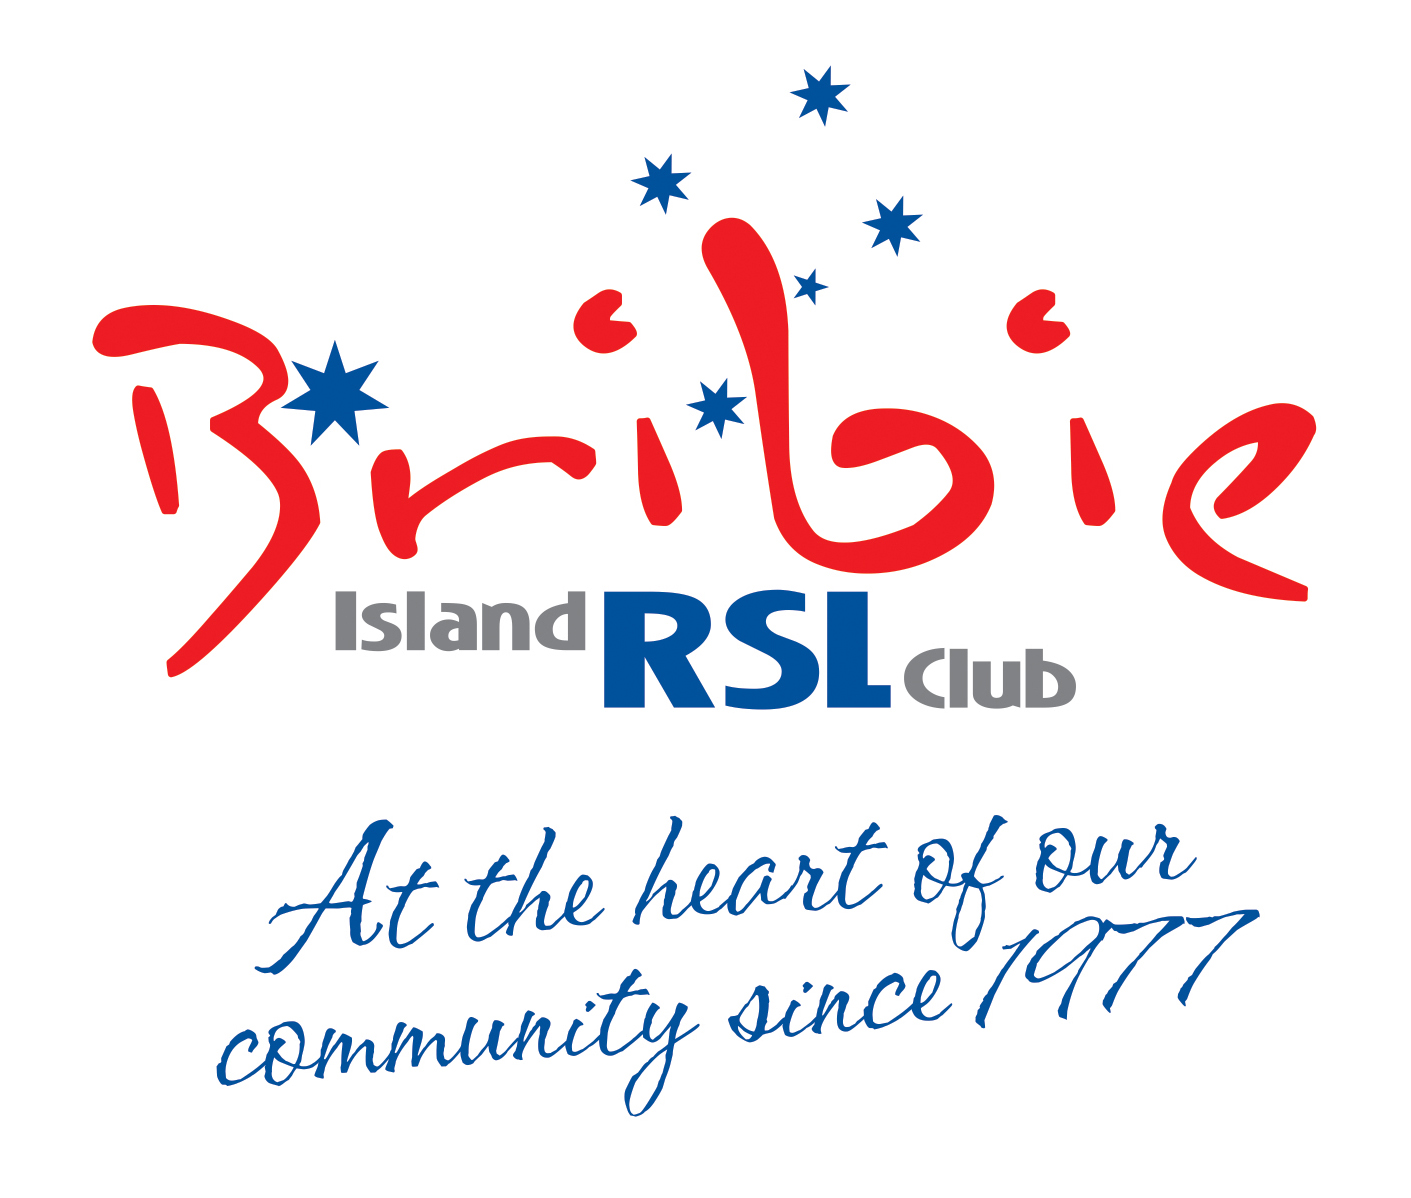 BIRSL logo and tagline white rgb